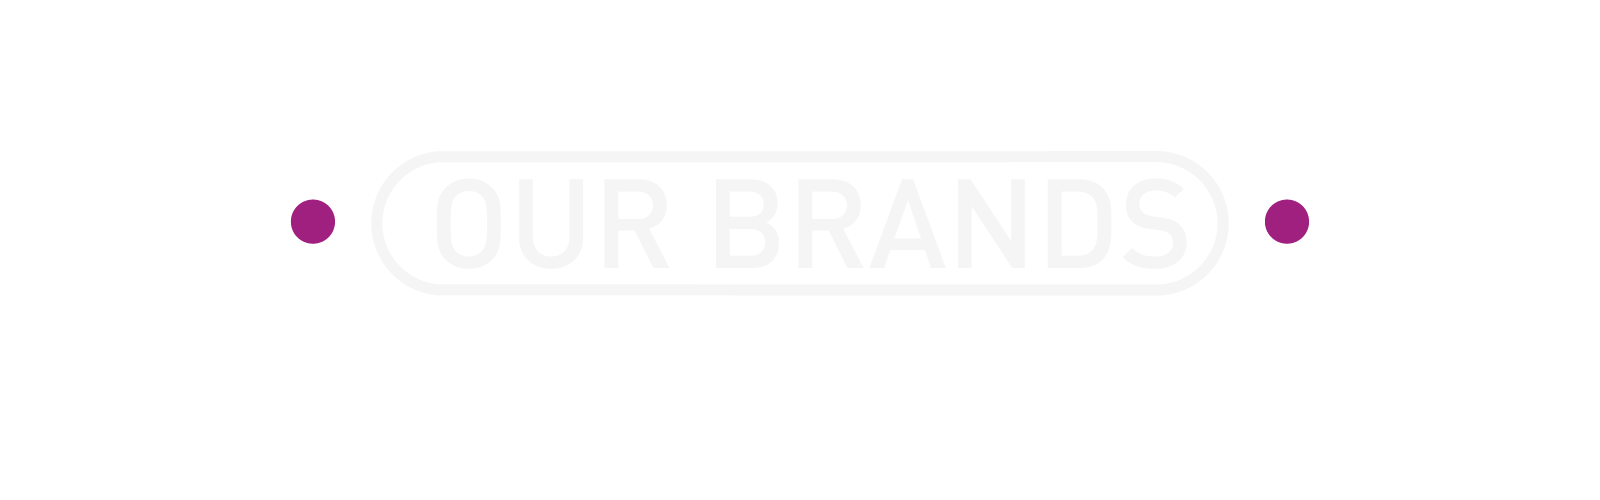 ourbrandsgraphic